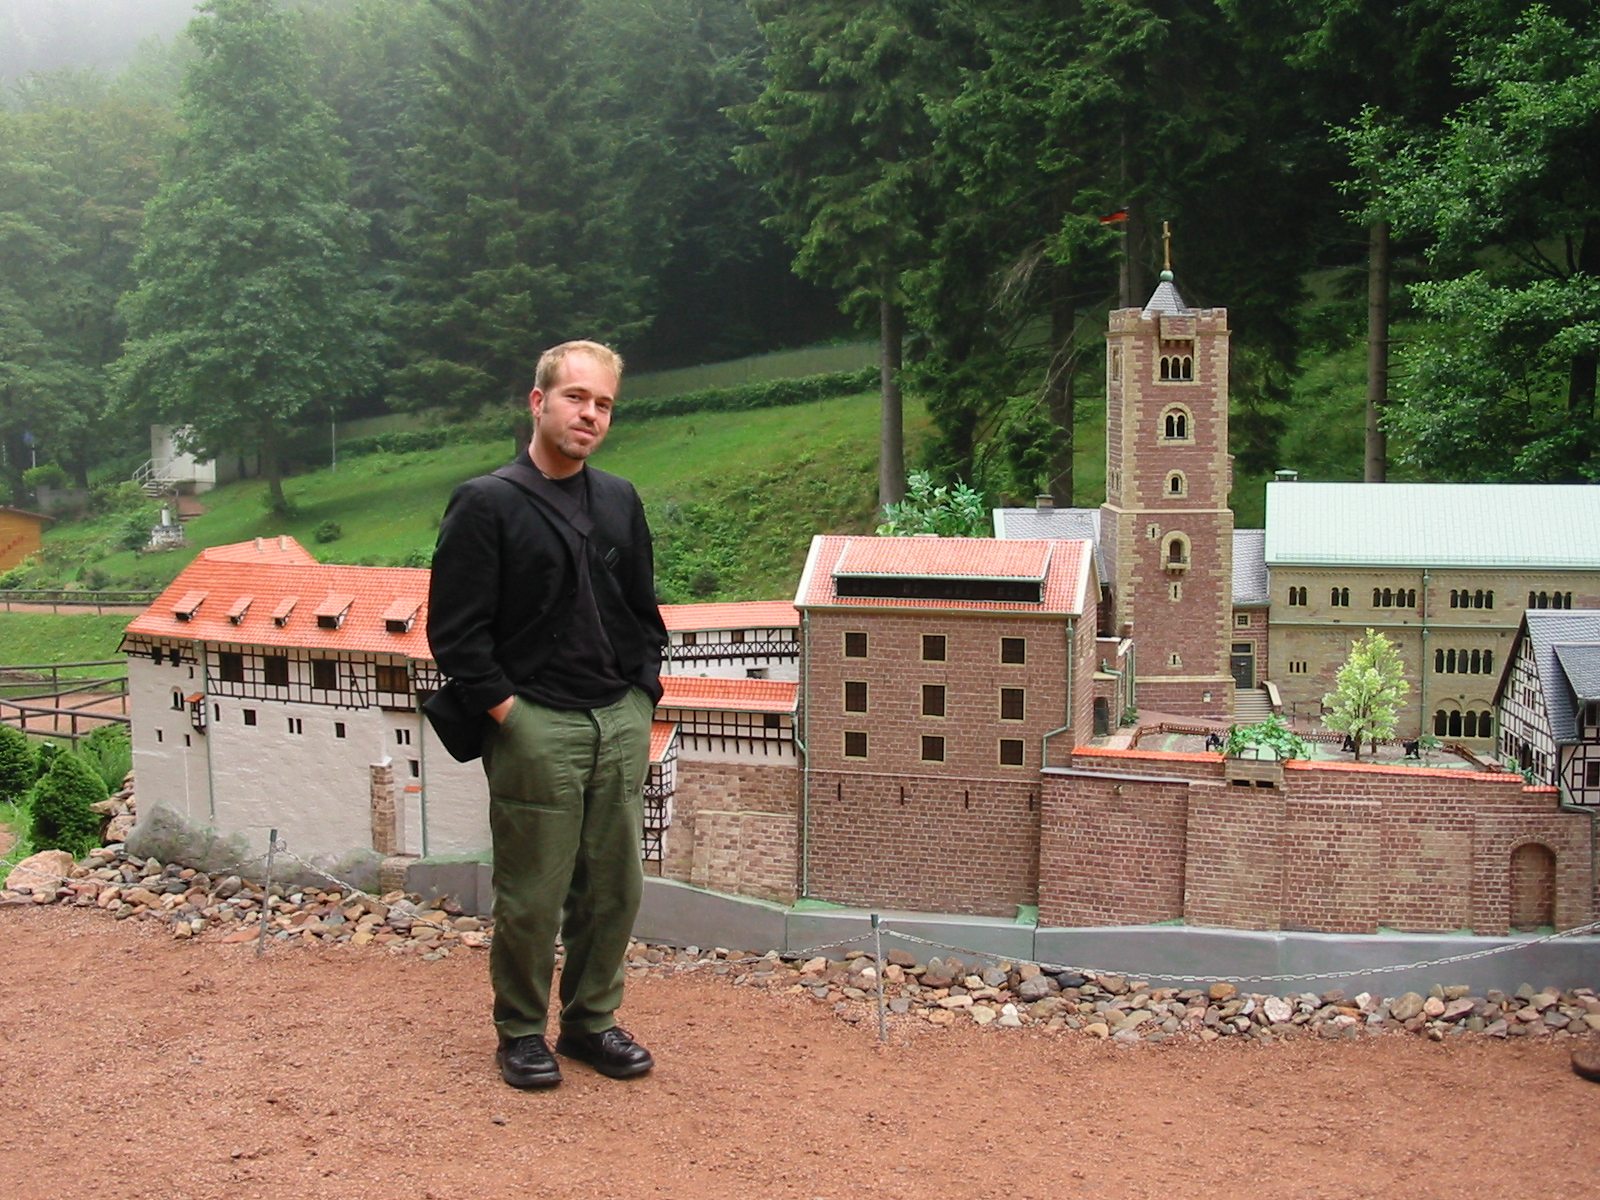 """Jason James in """"Little Thuringia,"""" a park located near the city of Eisenach, where he conducted field research on historic preservation and nationalism from 1996-98 Photo credit to Jason James"""